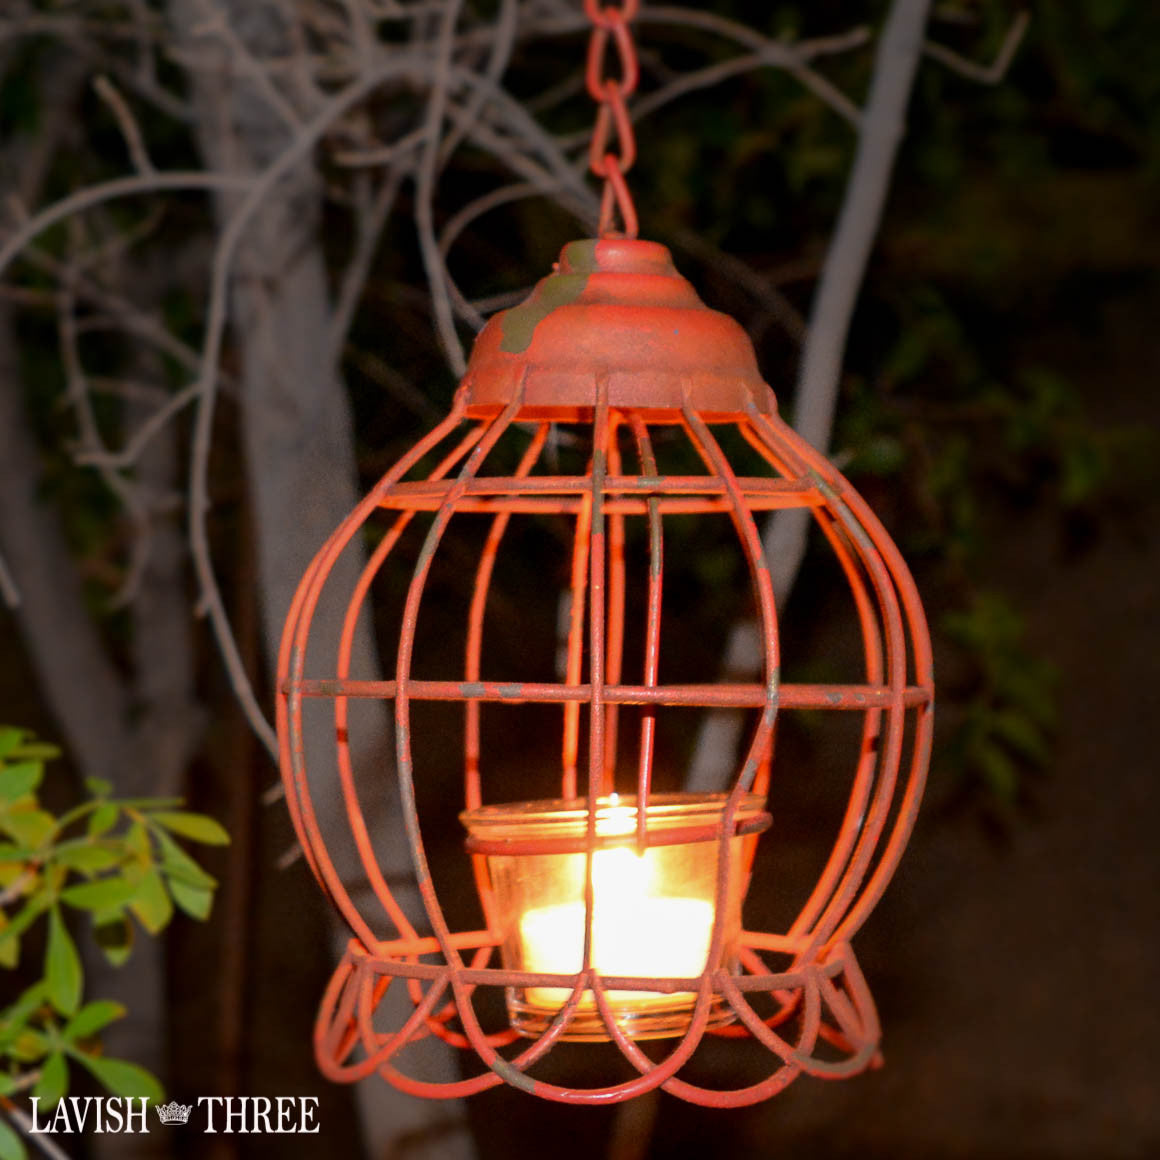 Vintage hanging shabby chic garden metal tealight lantern red